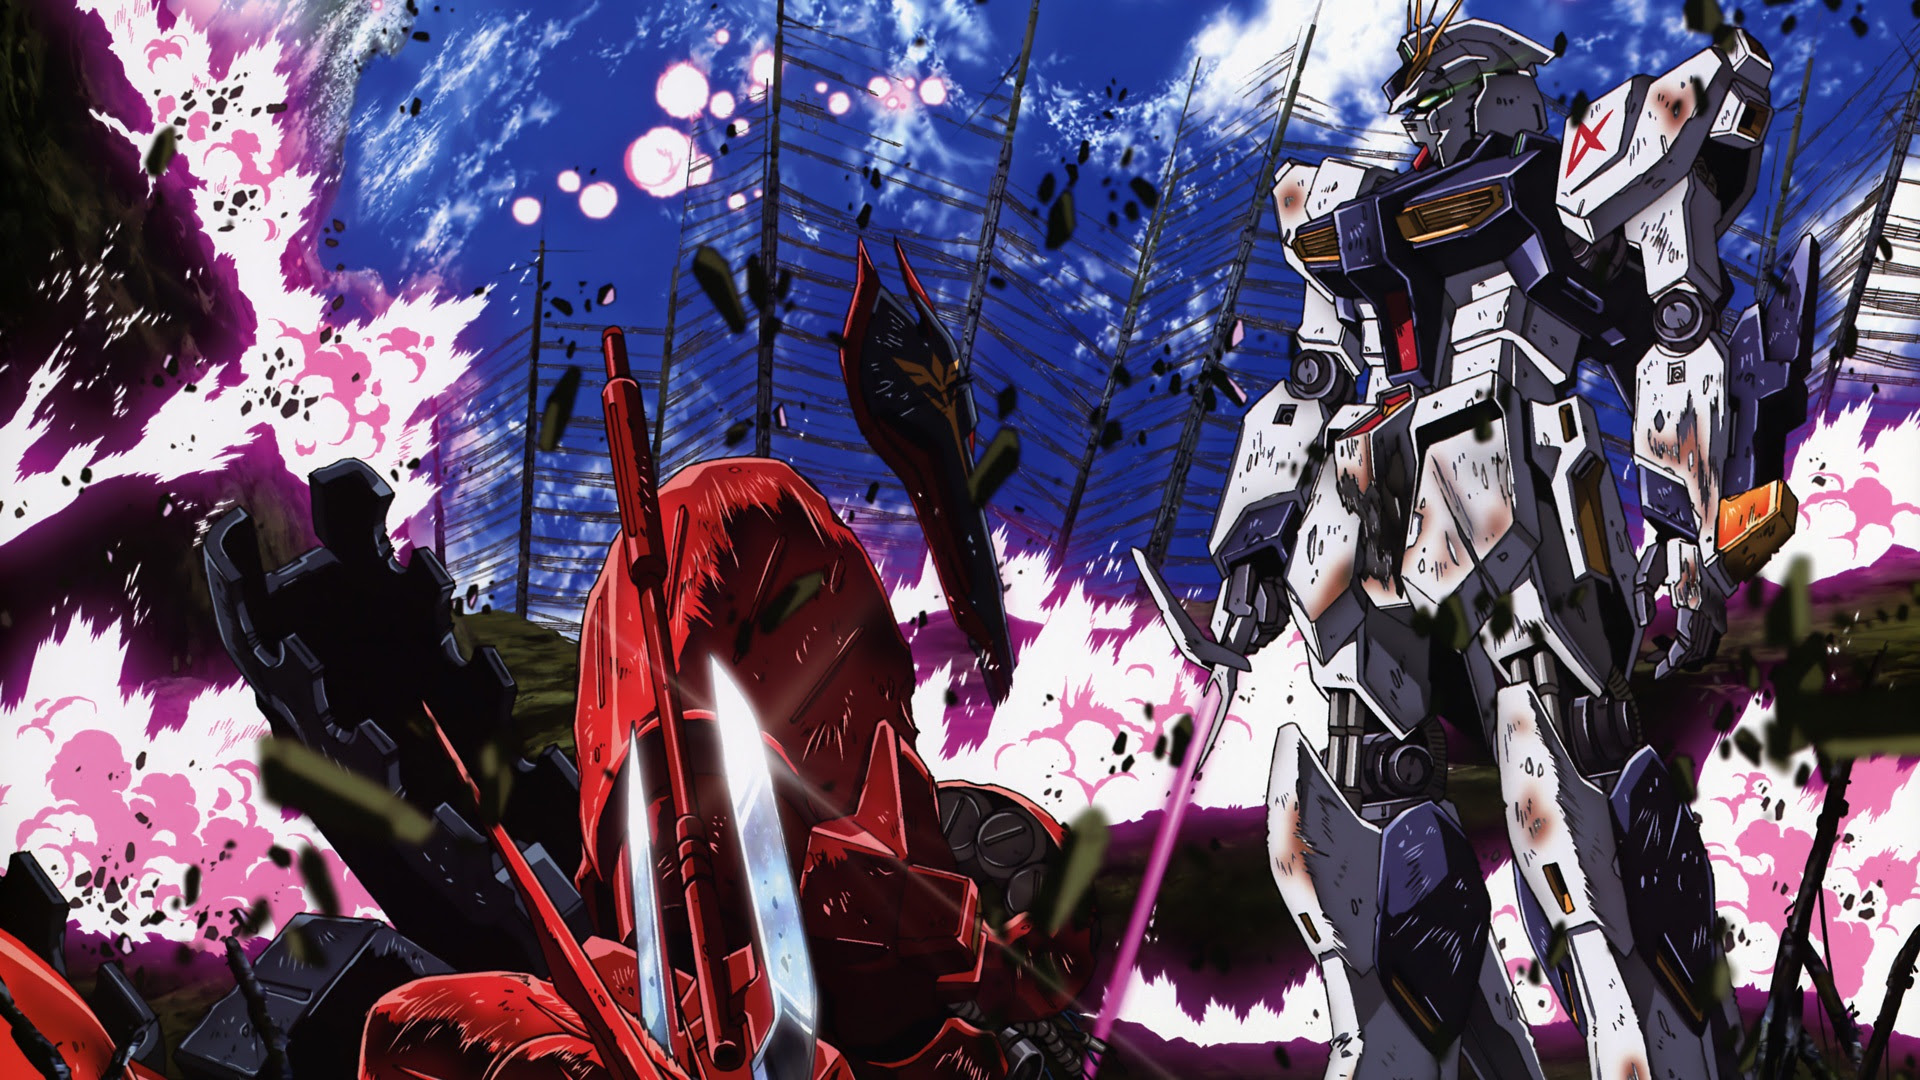 Gundam New Awesome HD Wallpapers 2015 - All HD Wallpapers